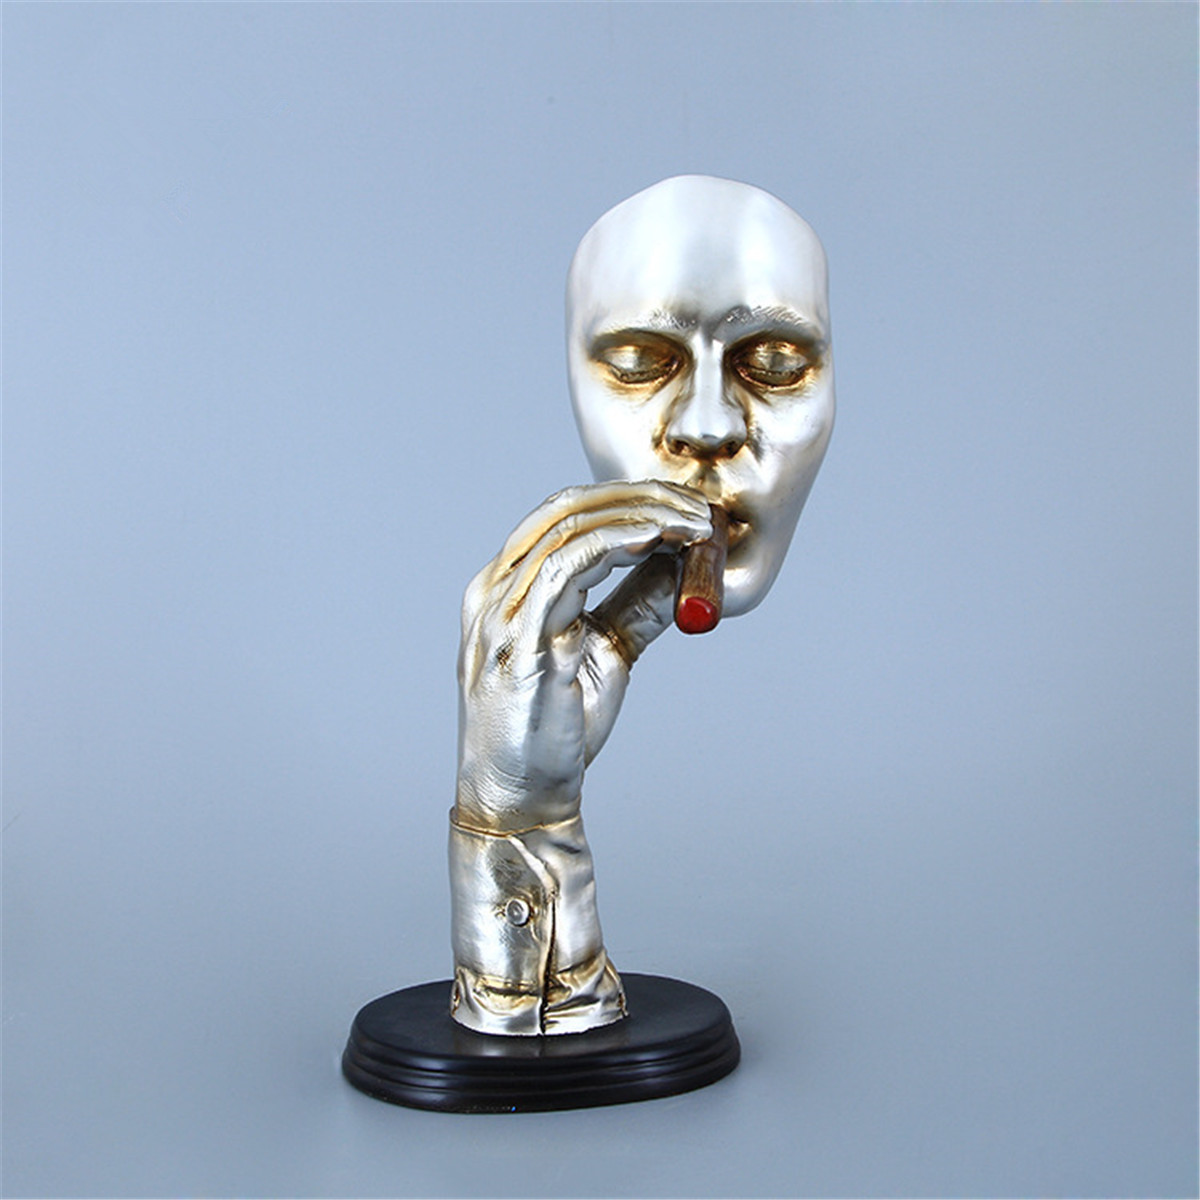 Retro Abstract Statues Sculpture Man Smoking Cigar Human Face Statue Ornament Character Resin Figurine Artwork Home Decorations